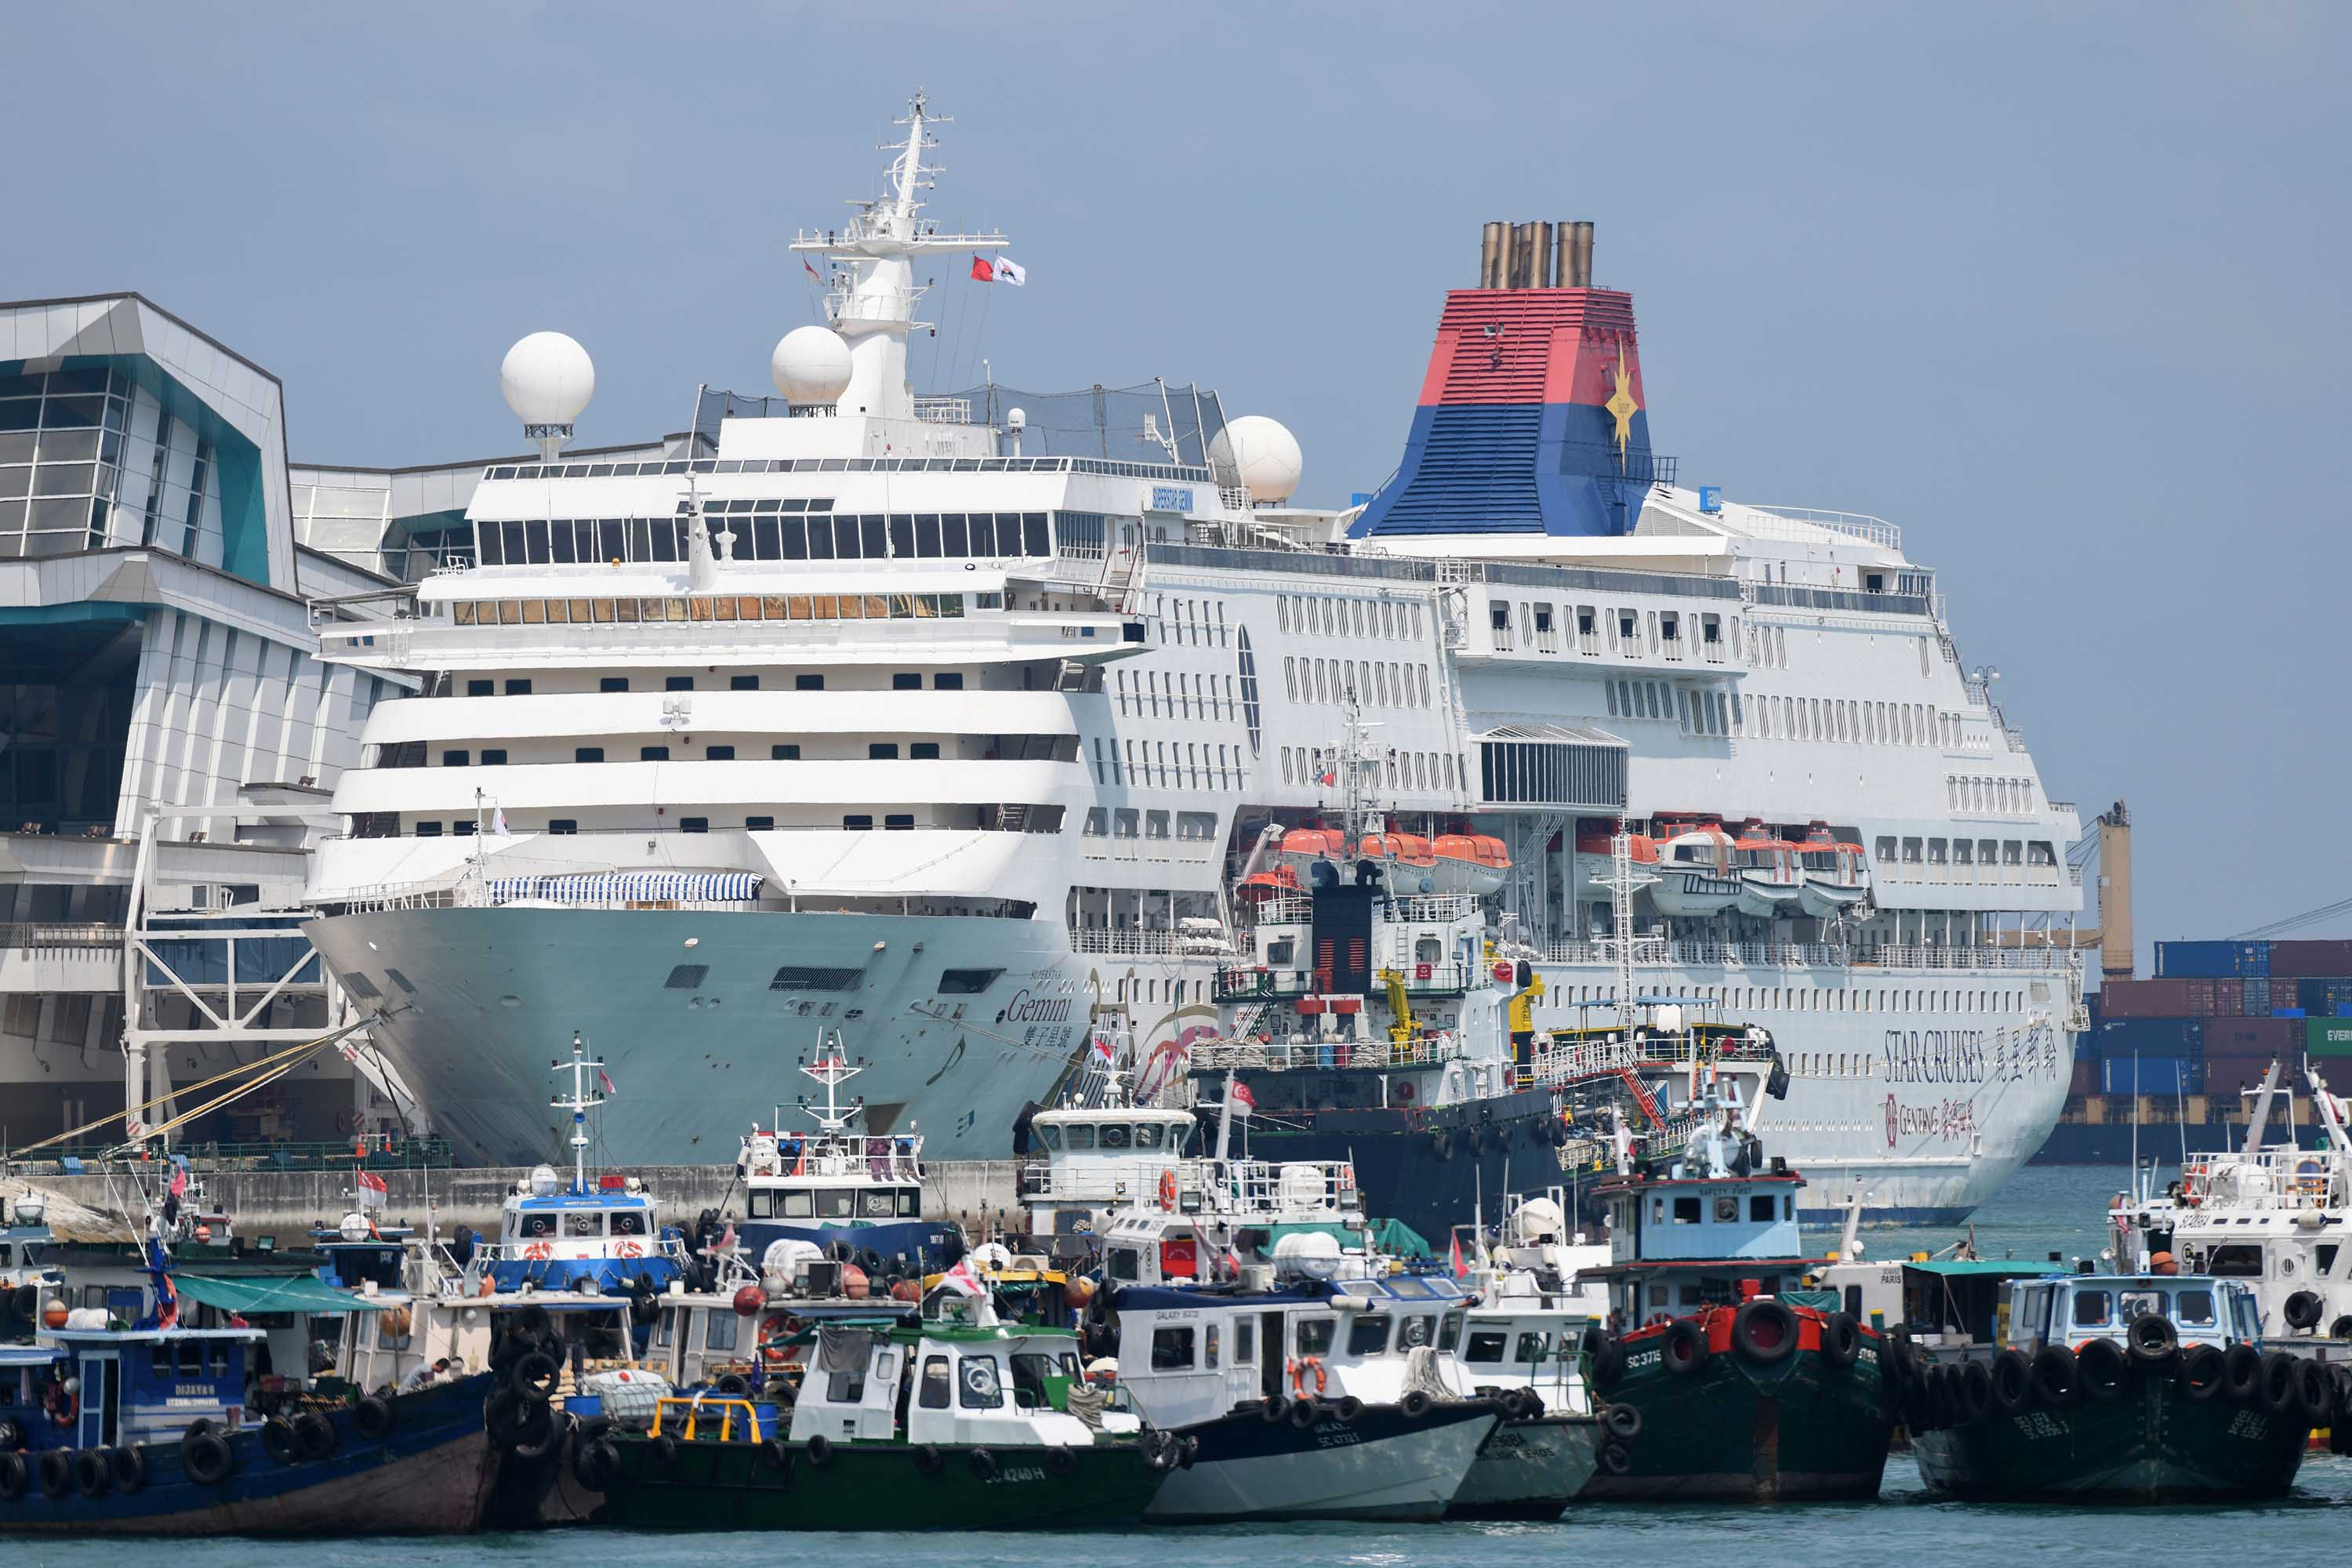 The SuperStar Gemini cruise ship is docked in Singapore on April 17, as authorities considered whether to use two ships as temporary accommodation for foreign workers during the coronavirus outbreak.